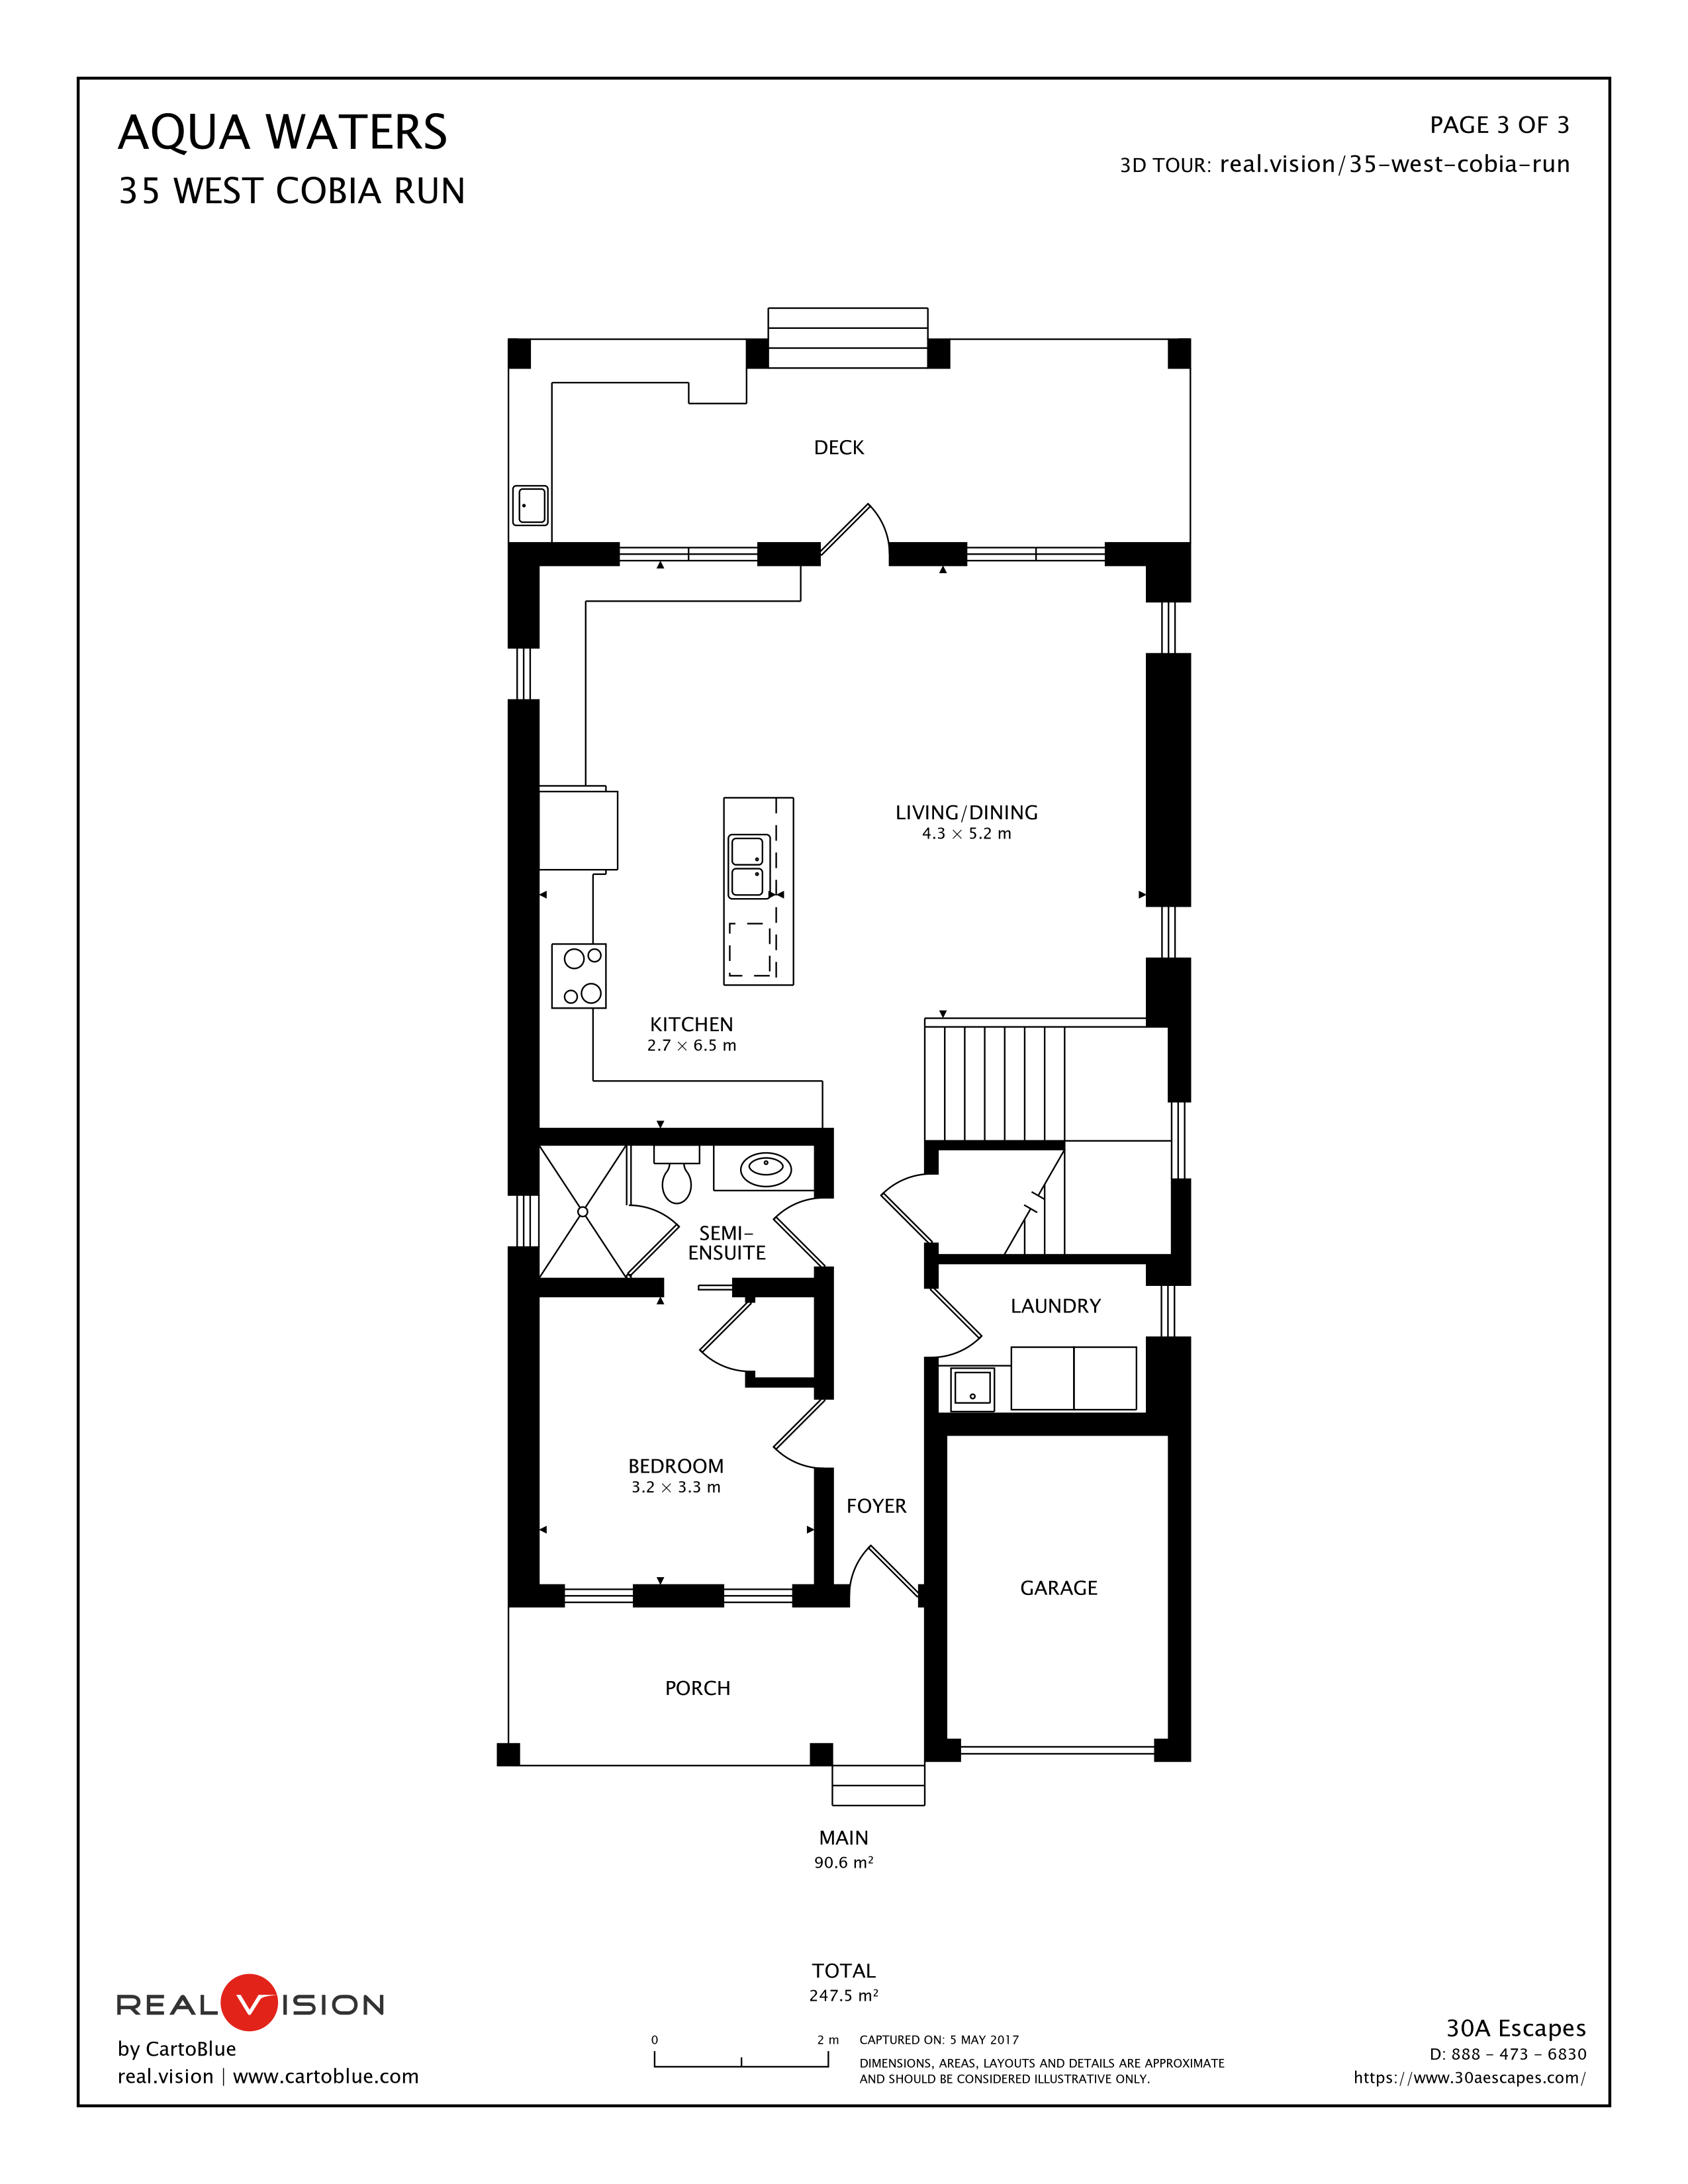 wrg 2199 sea pro wiring schematicsperfectly located 30a vacation house steps from seacrest beach automotive [ 2550 x 3300 Pixel ]